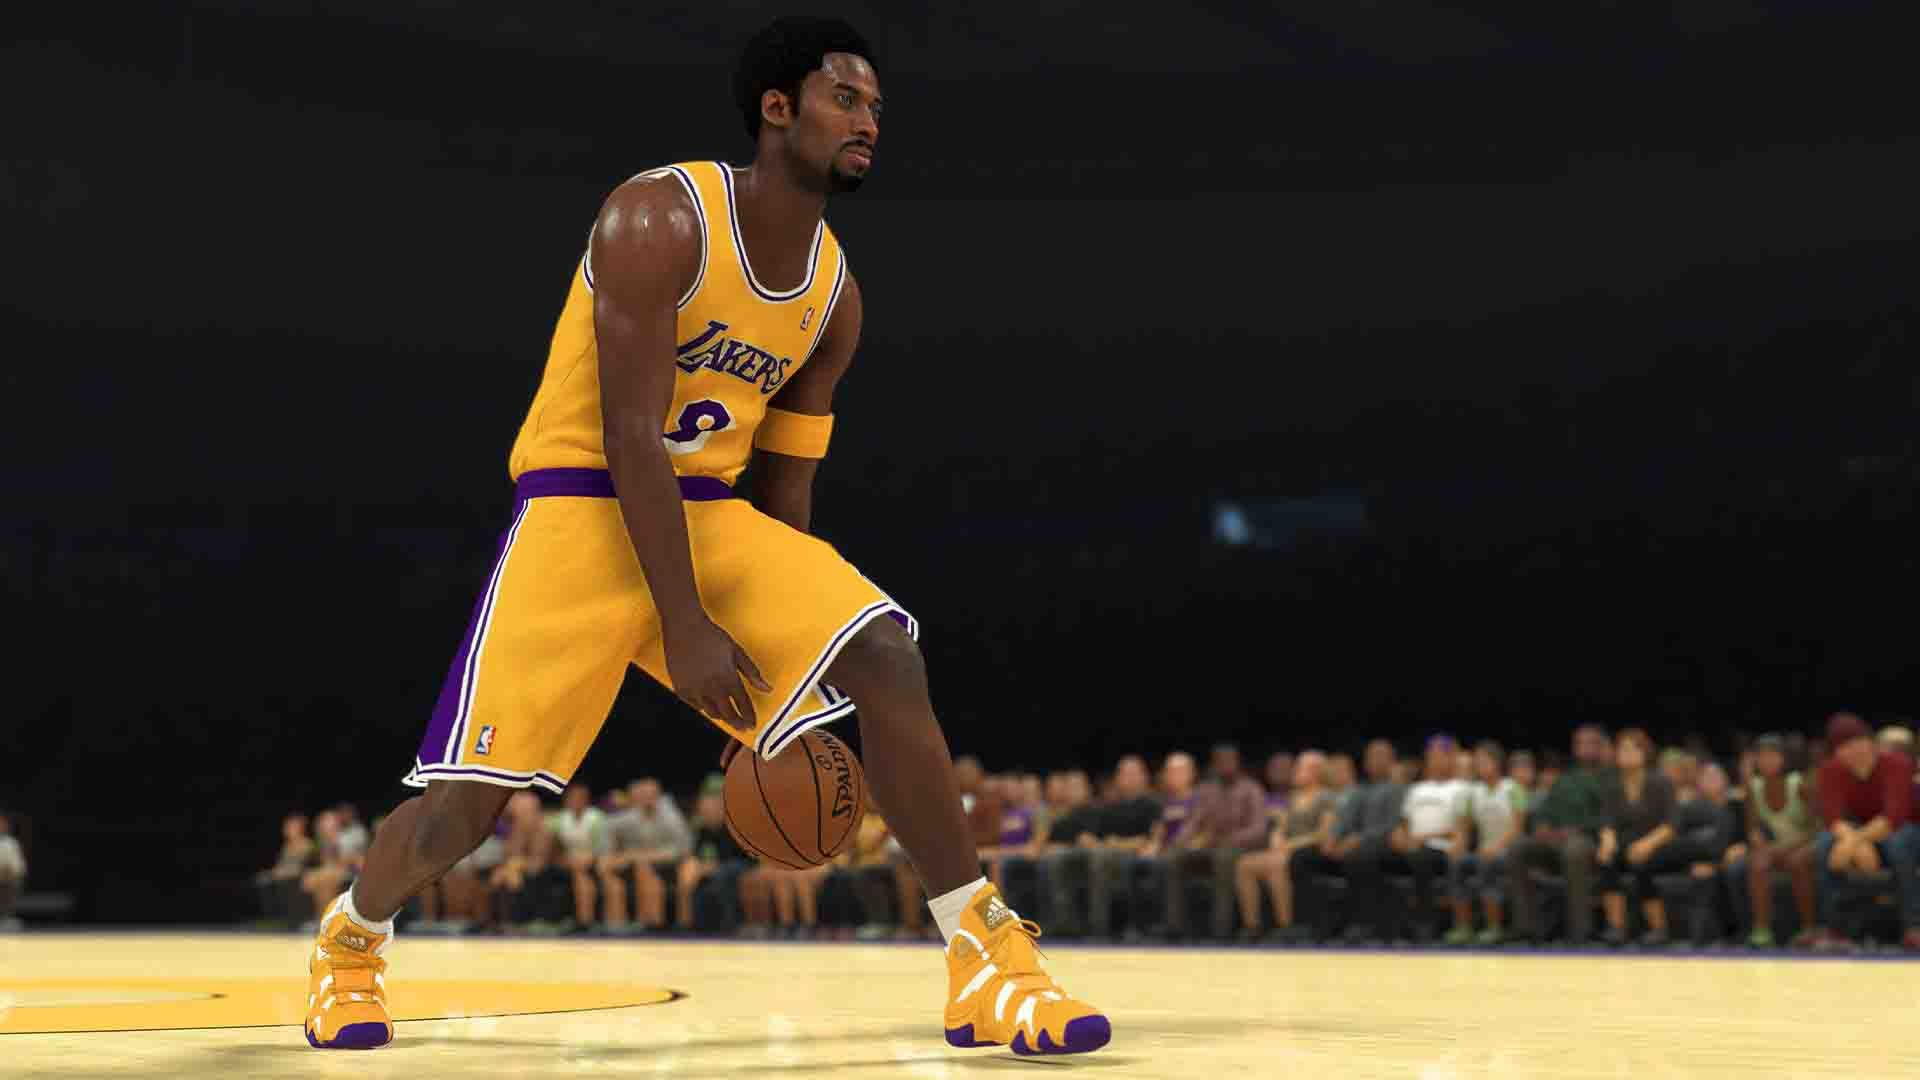 Nba 2k21 Xbox Series X Next Gen Features The City Mynba Gameplay Release Date Ea Play Price Specs More